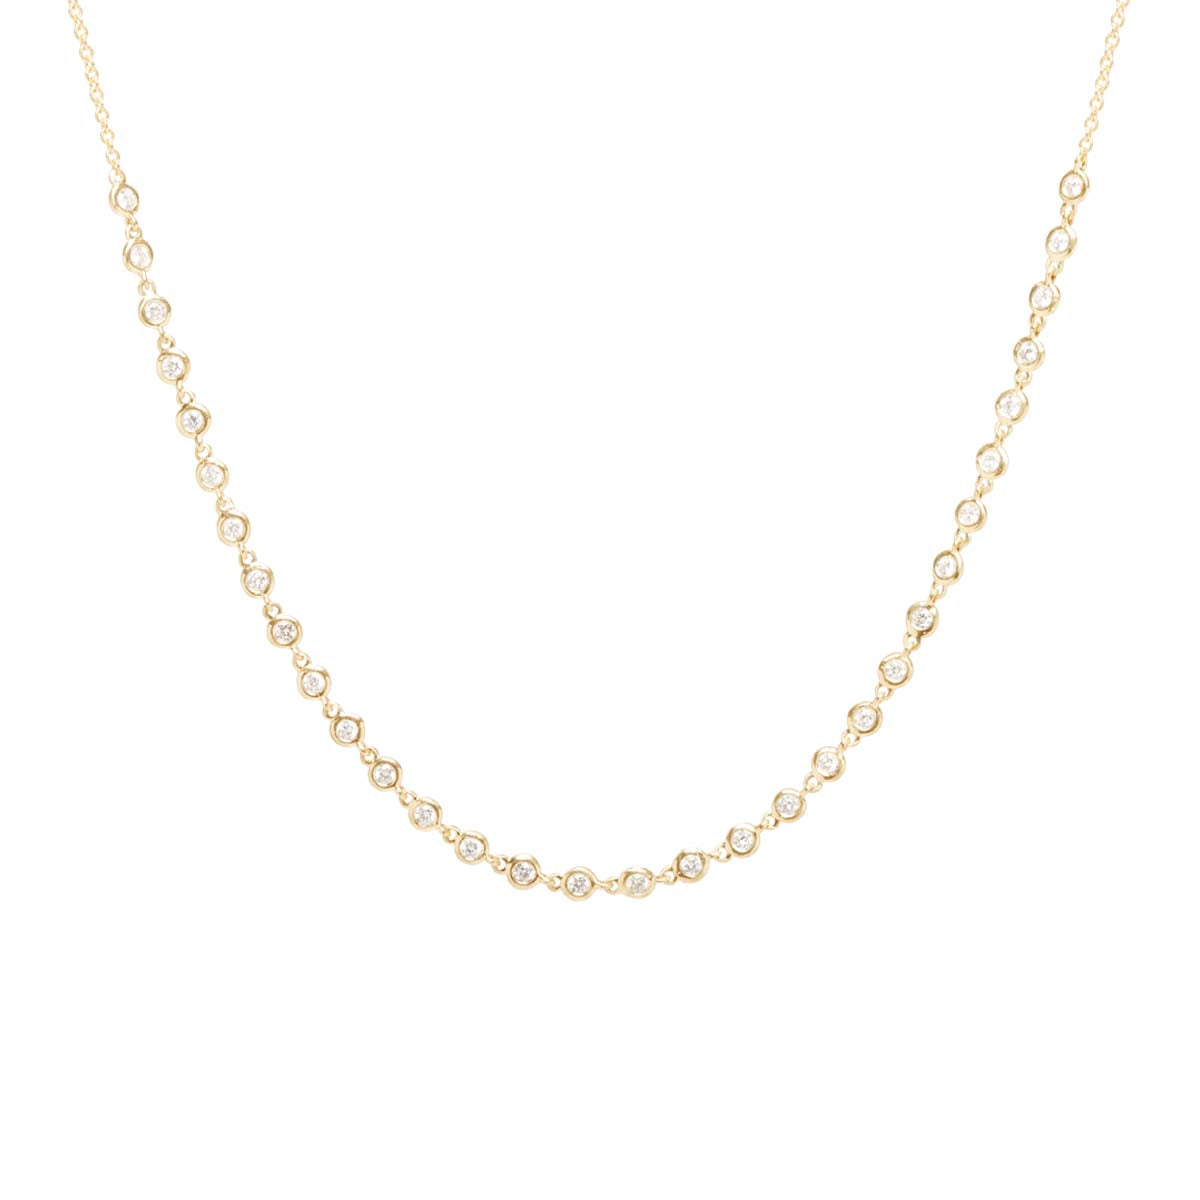 Zoë Chicco 14kt Yellow Gold White Diamond Tennis Choker Necklace